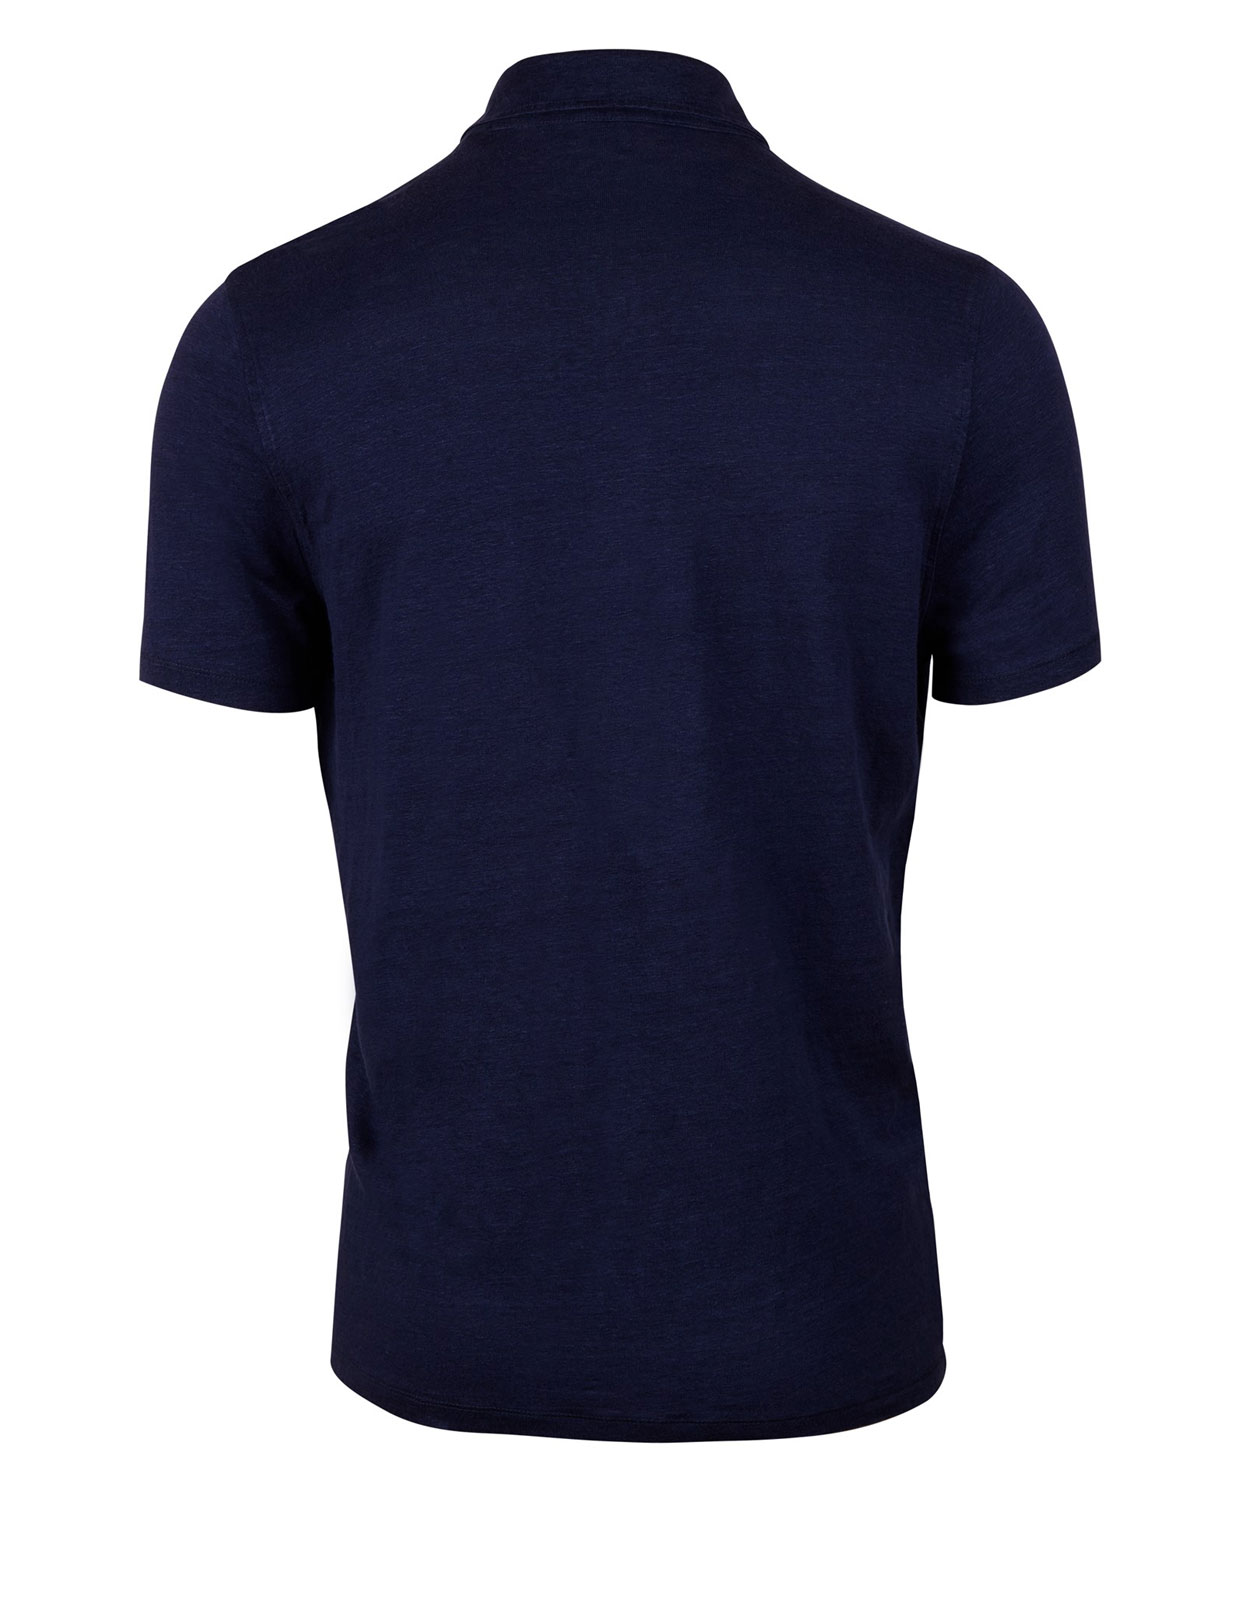 Polo Shirt Linen Navy